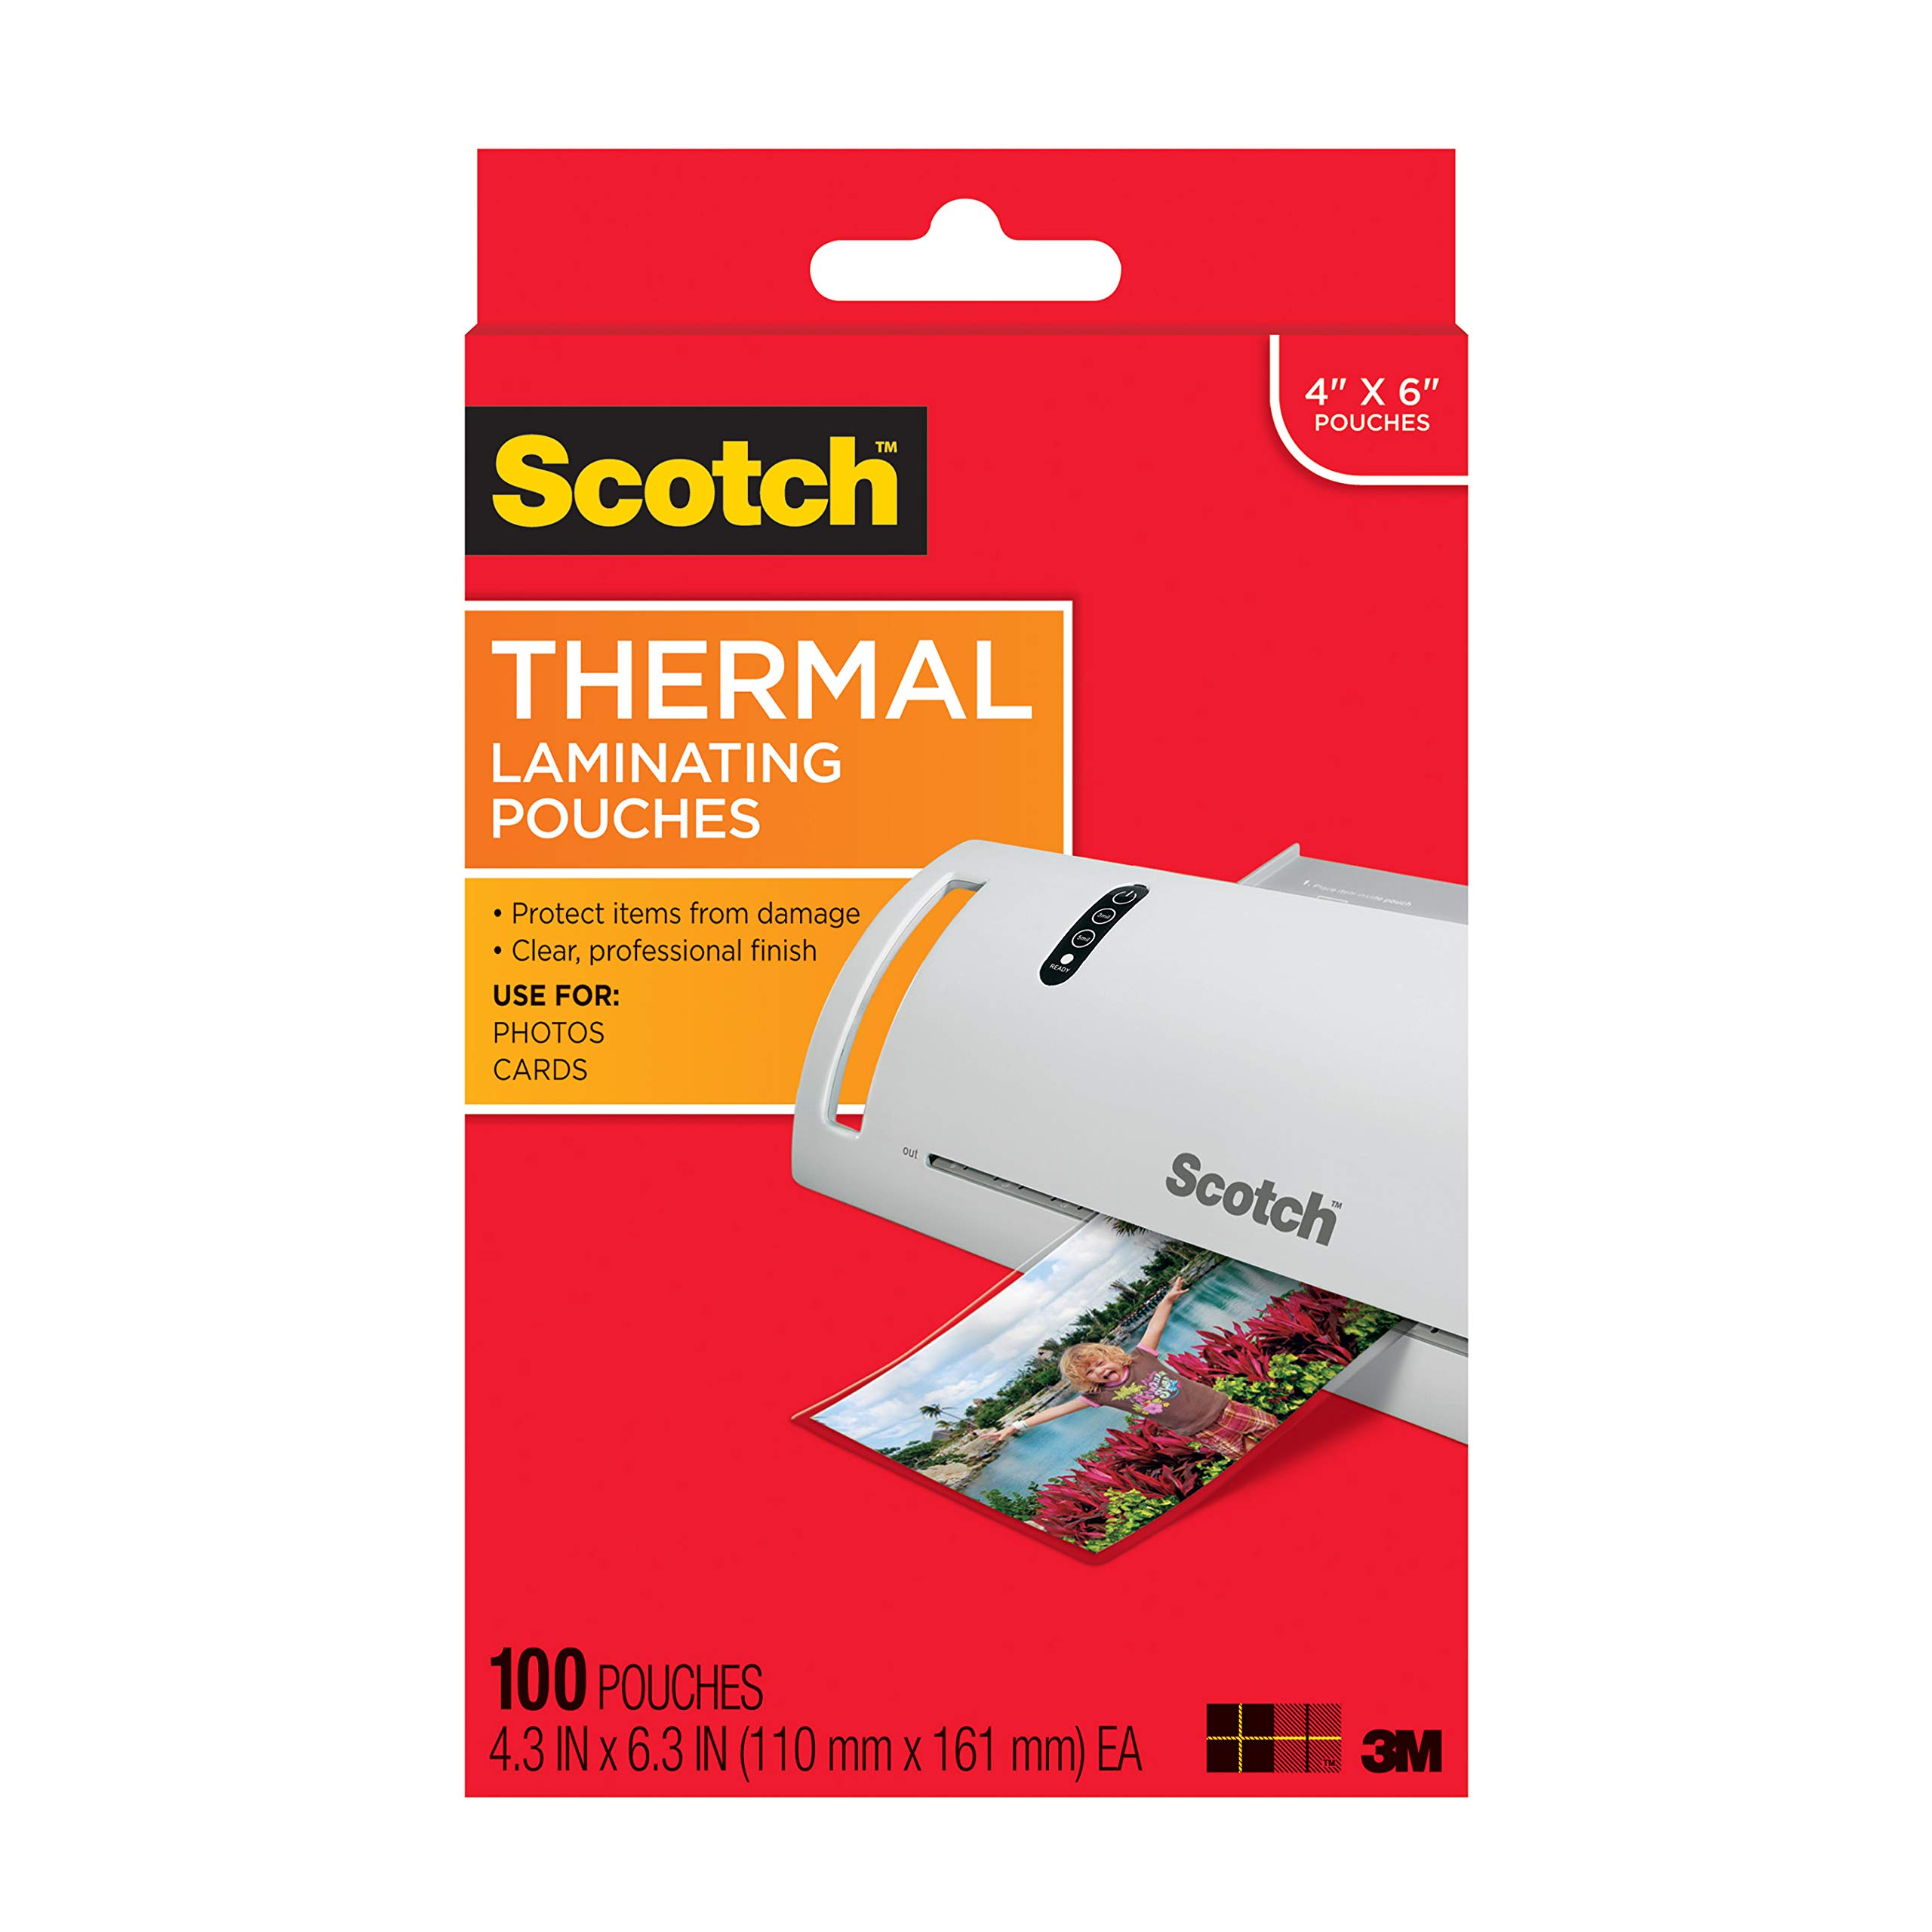 Scotch Thermal Laminating Pouches, 4.3 Inches x 6.3 Inches, 100 Pouches (TP5900-100) by Scotch Brand